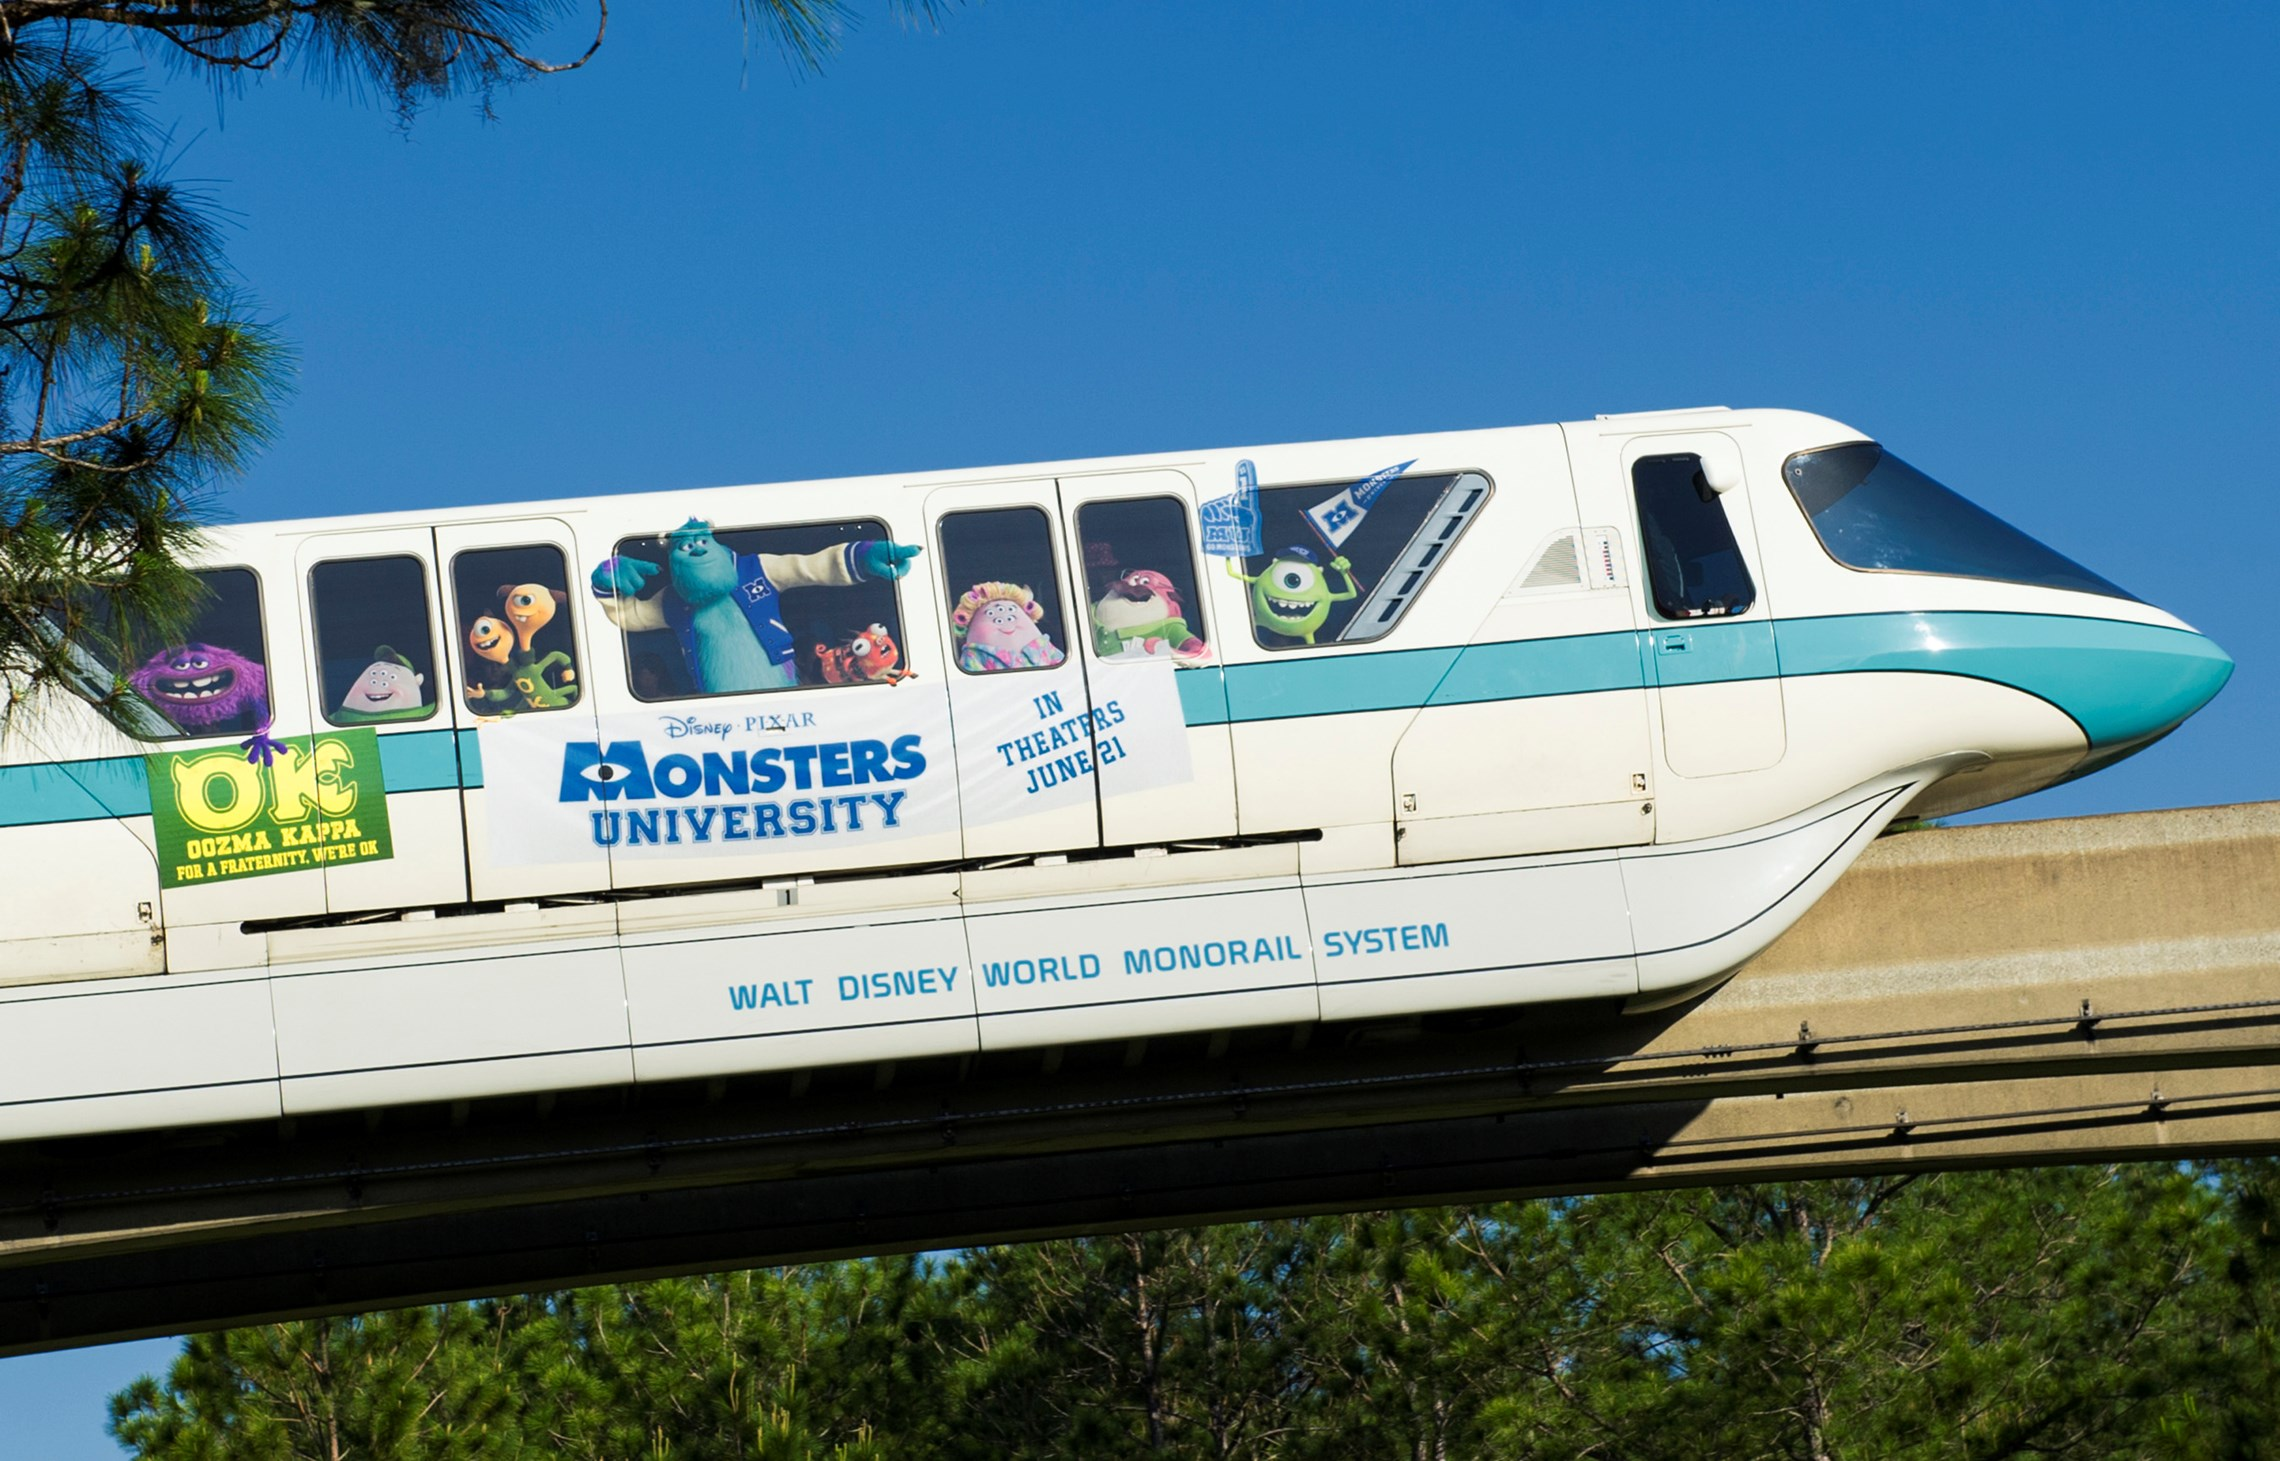 Monsters University Monorail concept art